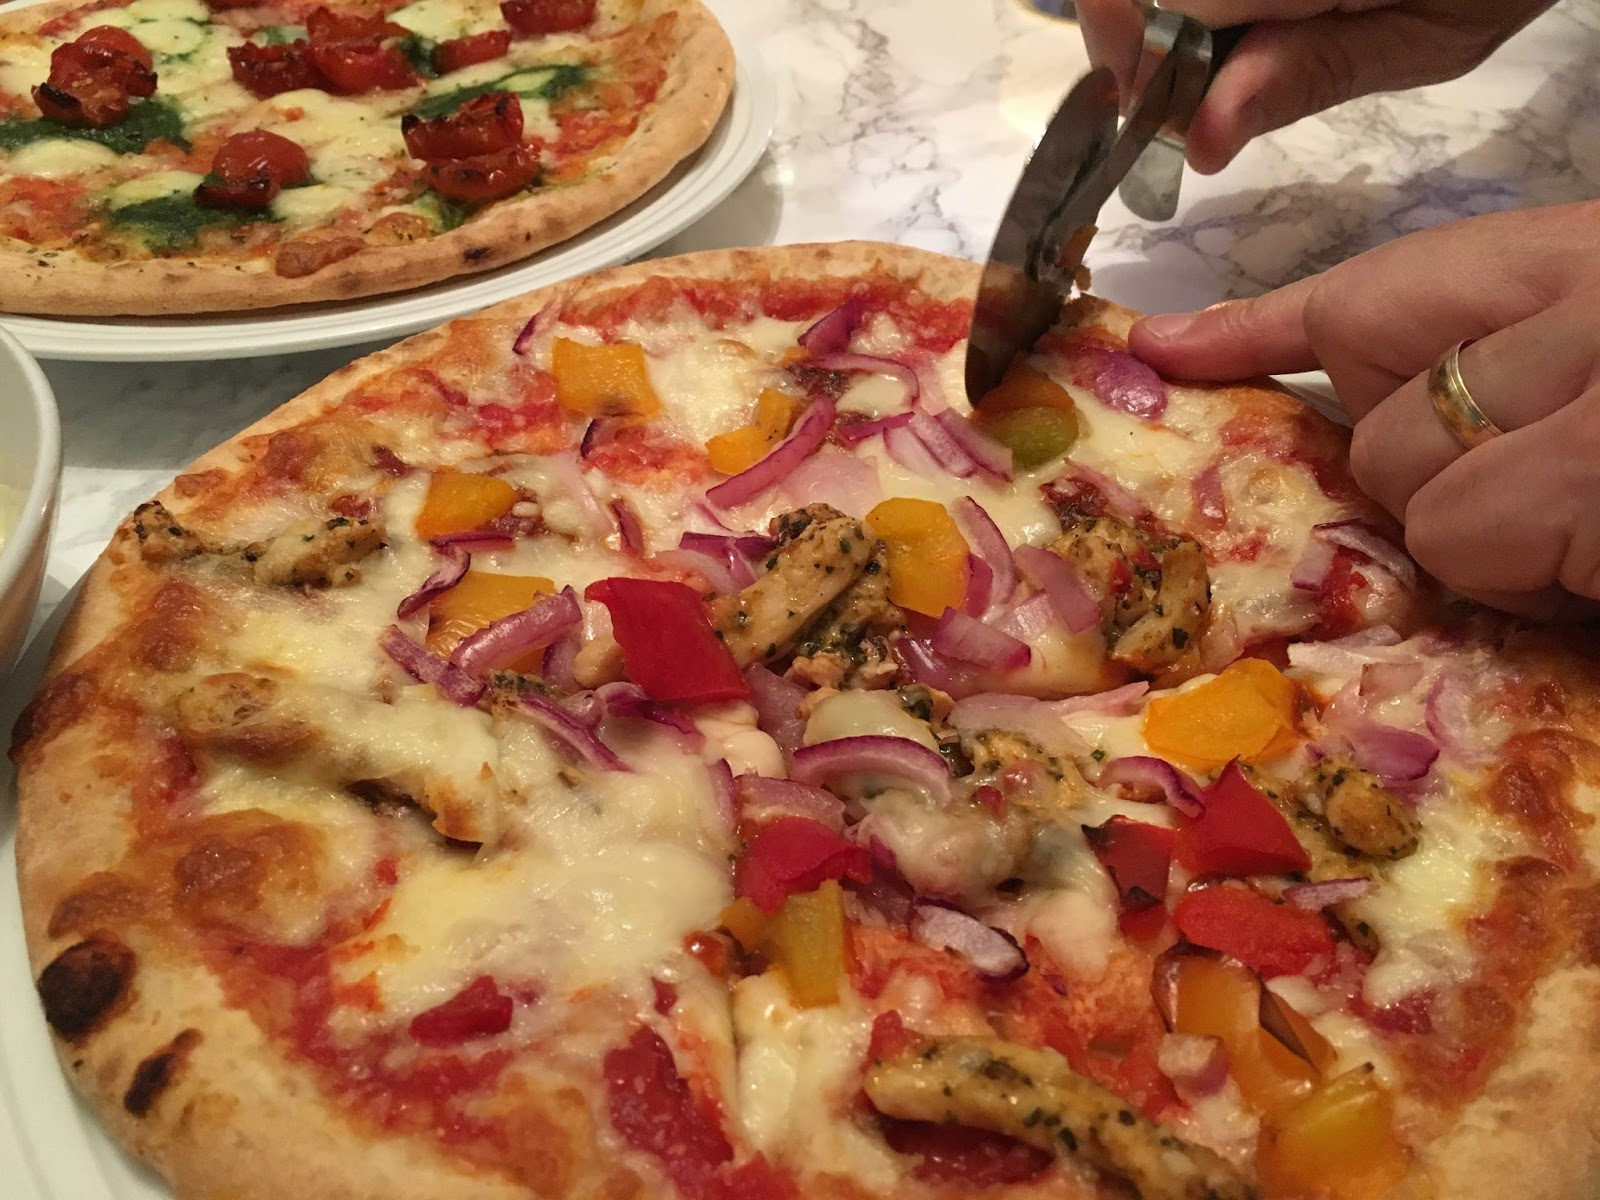 Pizza Express review \ Iceland \ Artisana \ food blogger \ gelato \ Italian night \ Priceless Life of Mine \ Over 40 lifestyle blog